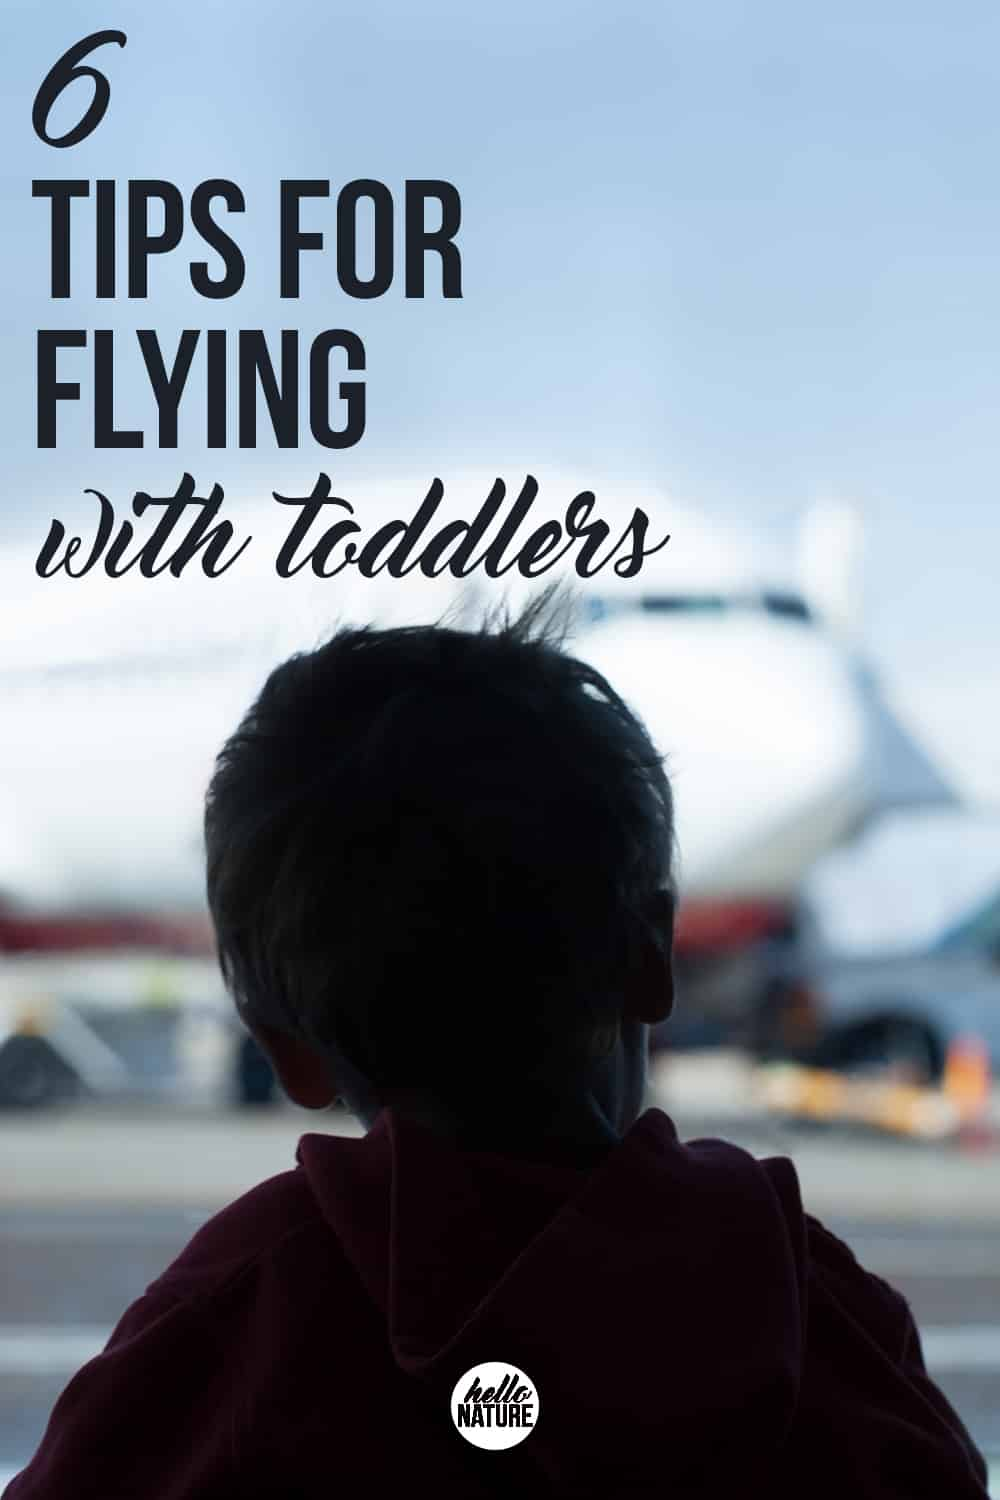 Getting ready to fly the friendly skies with your family? These six tips for flying with toddlers will make it easier and more enjoyable!